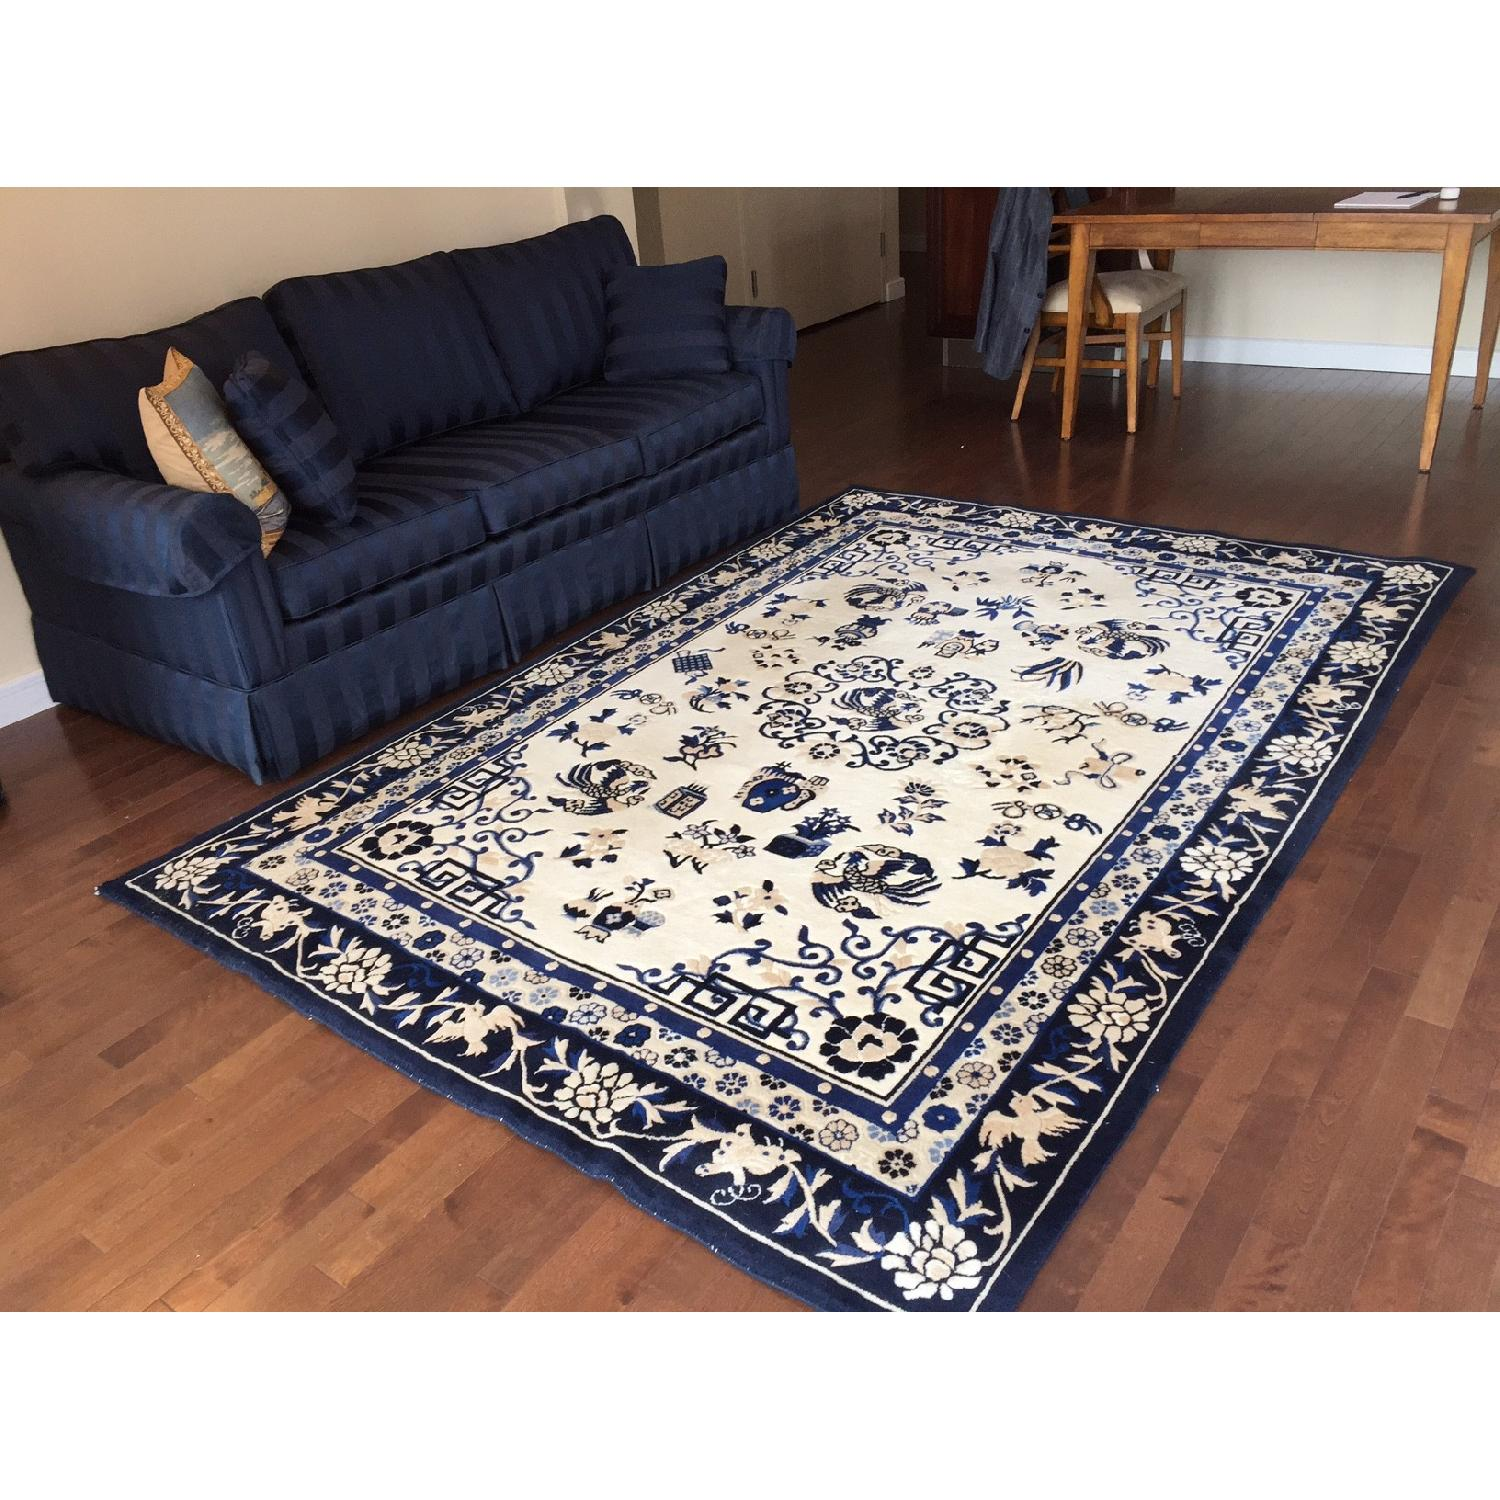 Ethan Allen Chinese Medallion Area Rug - image-1